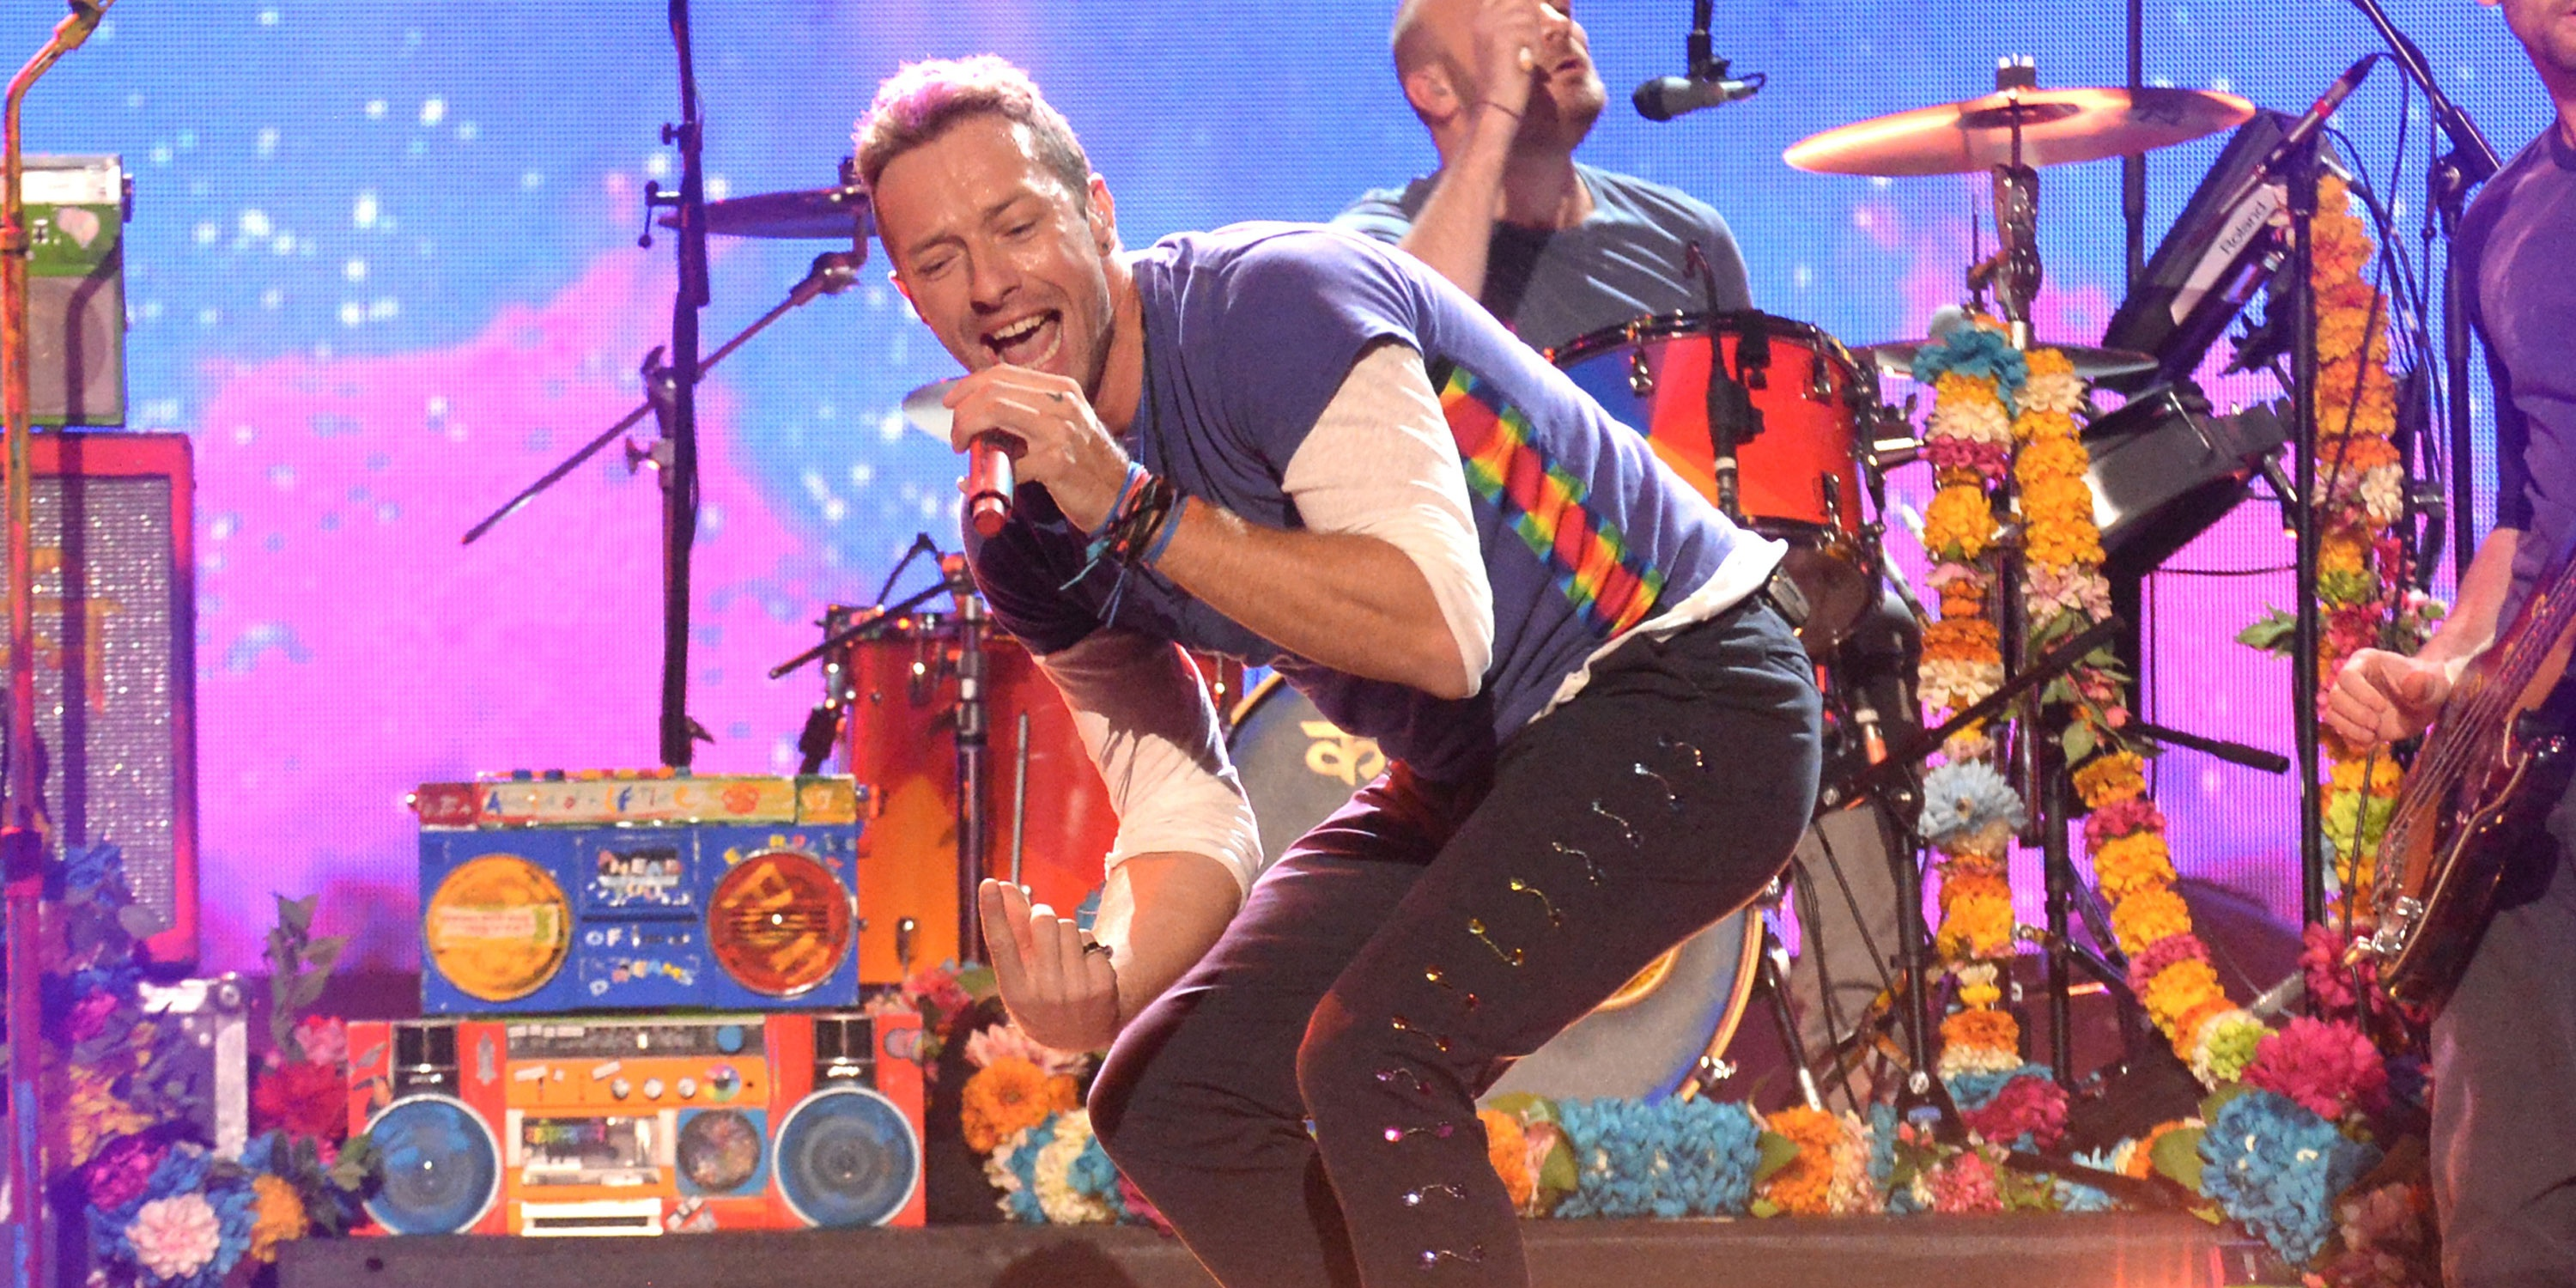 You might be able to choose a song Coldplay will play in Singapore